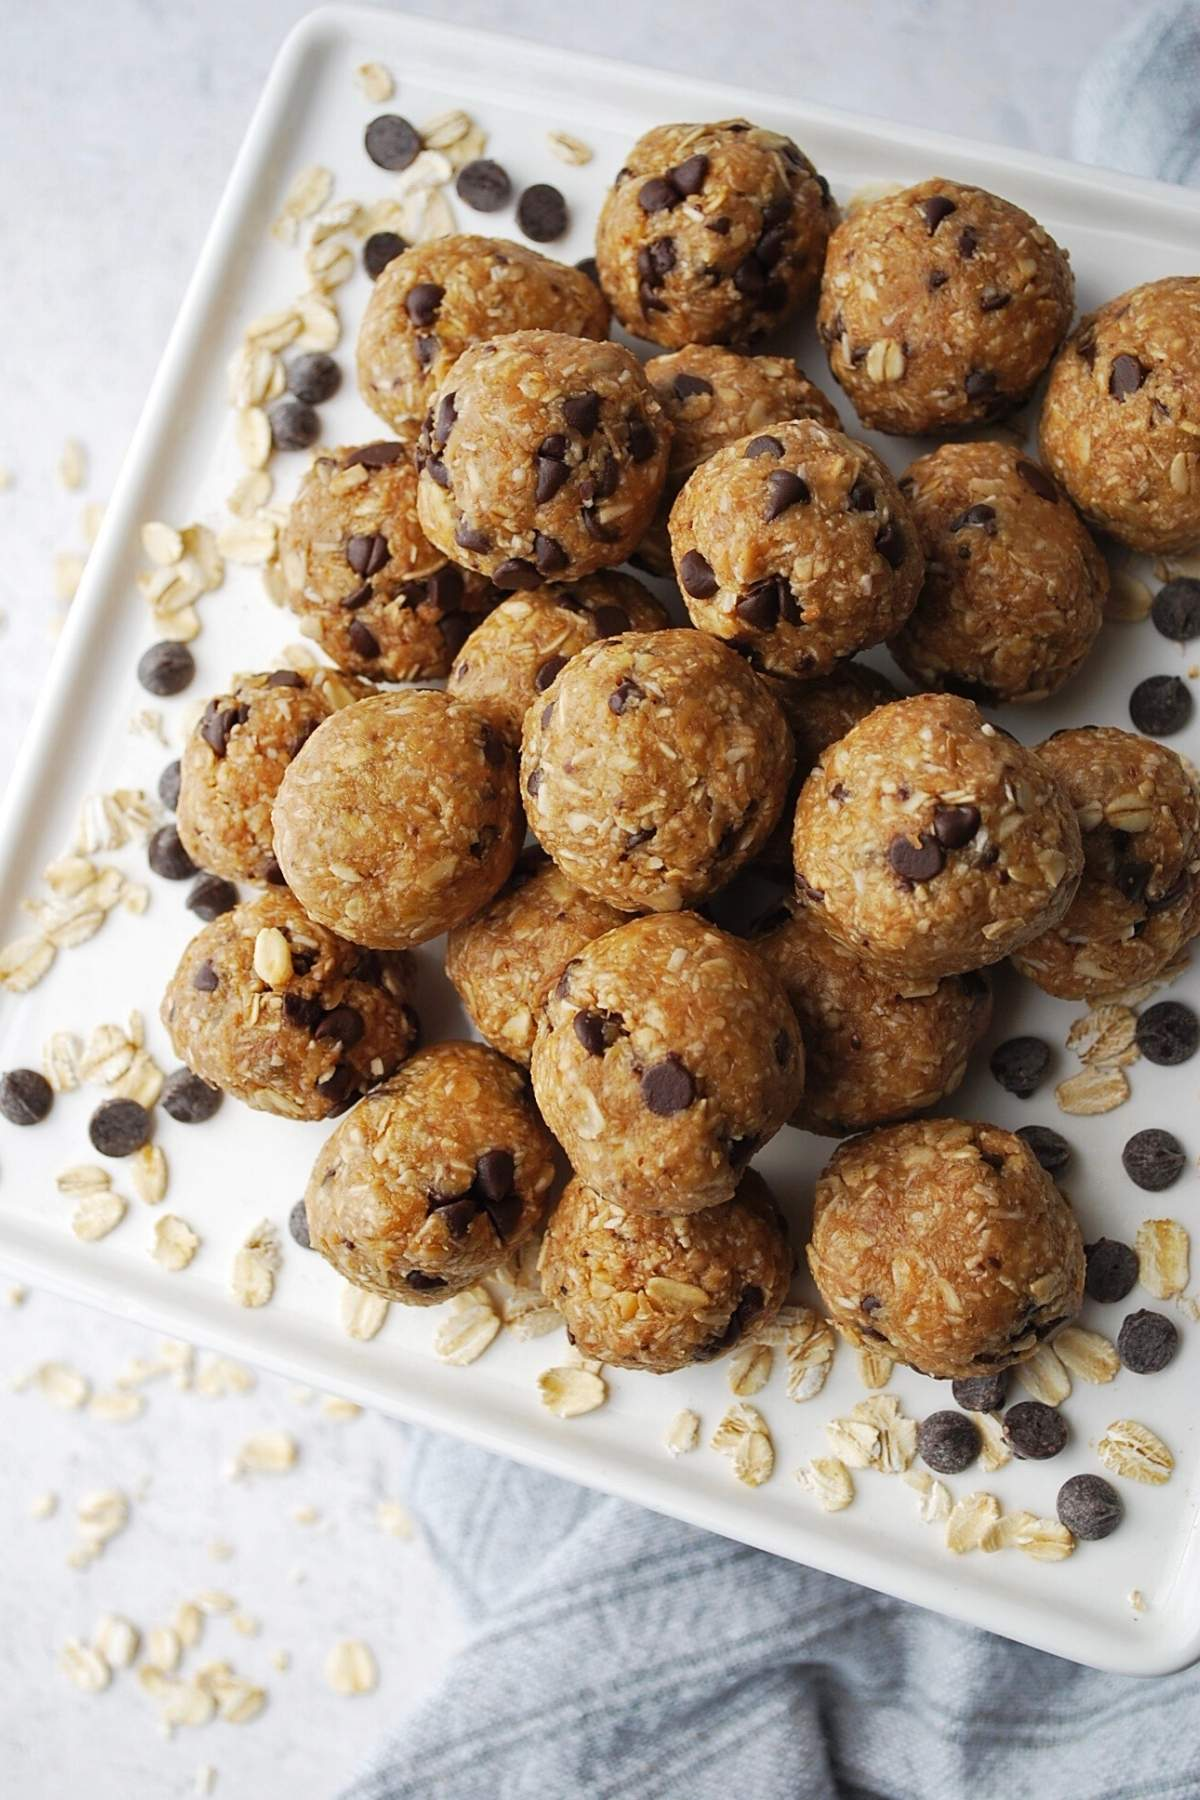 overhead photo of bliss balls with chocolate chips and oats on a platter with a napkin underneath